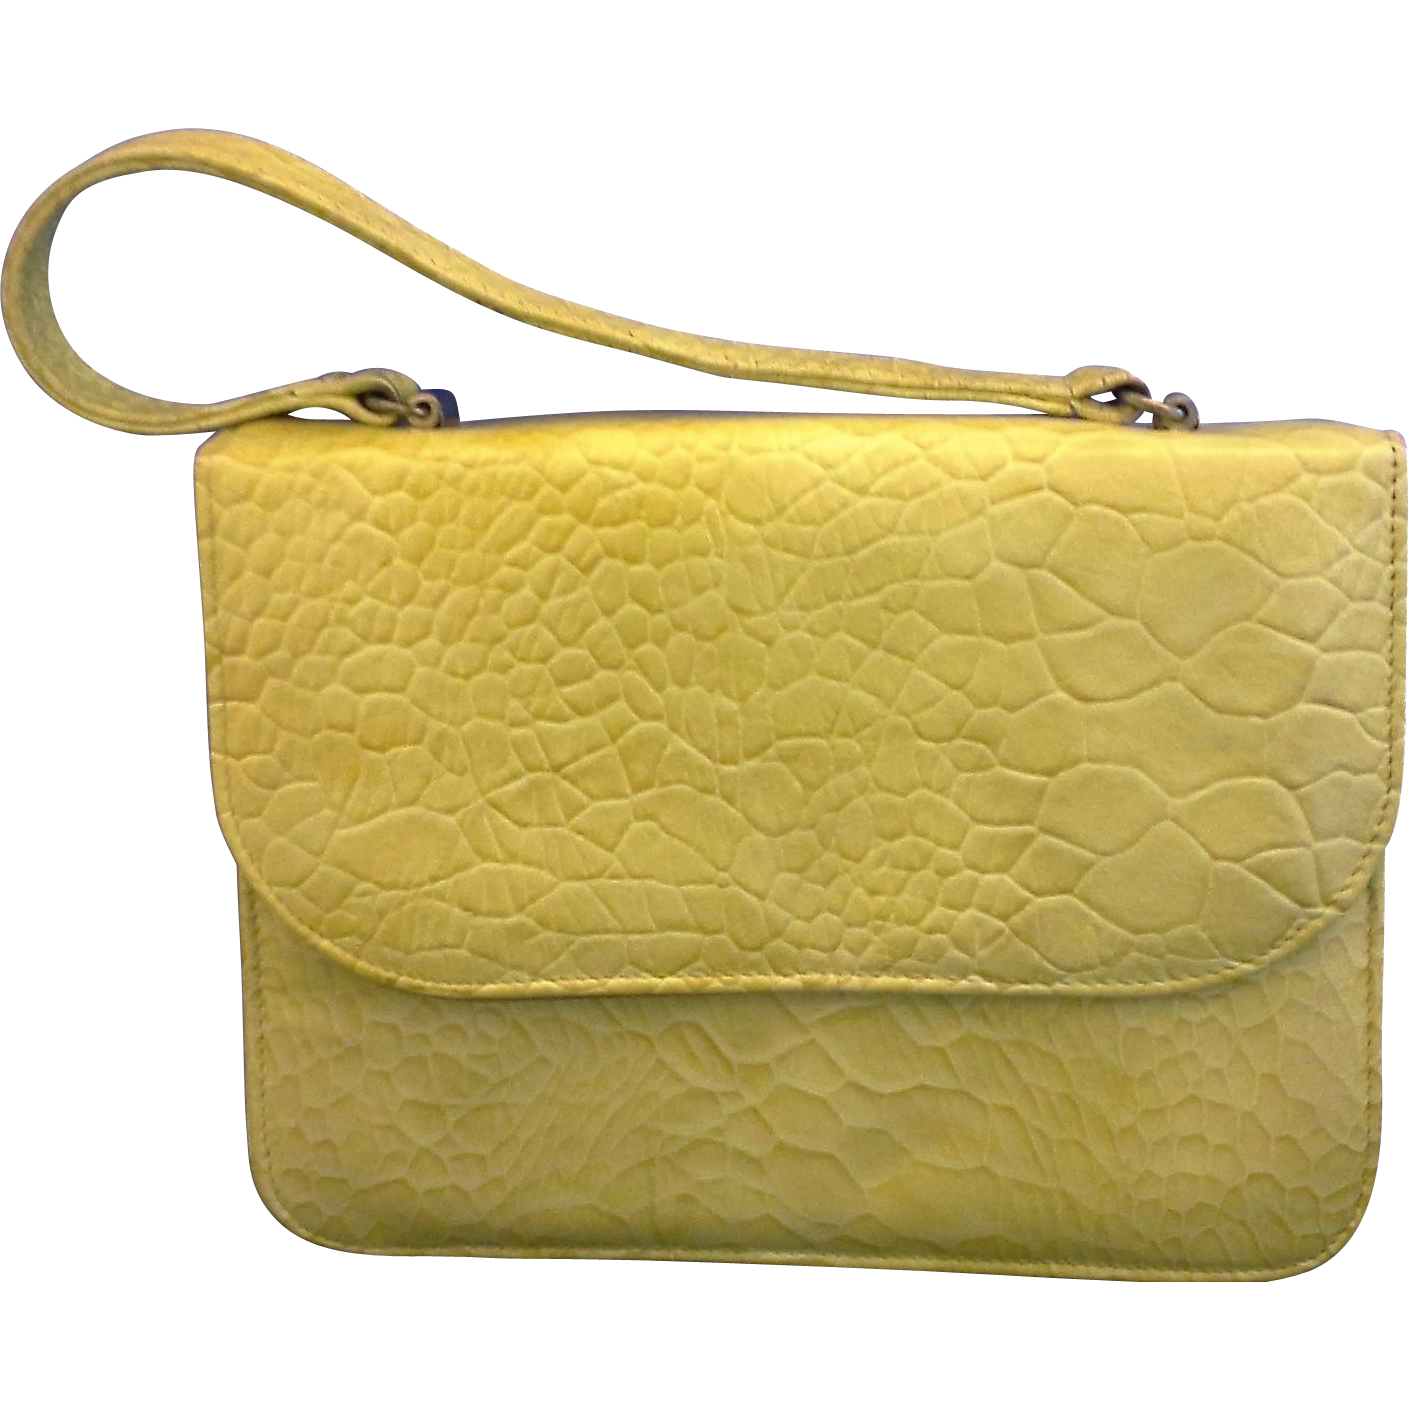 Mar-Shel Vintage Yellow Handbag Faux Alligator Vinyl Moc Croc